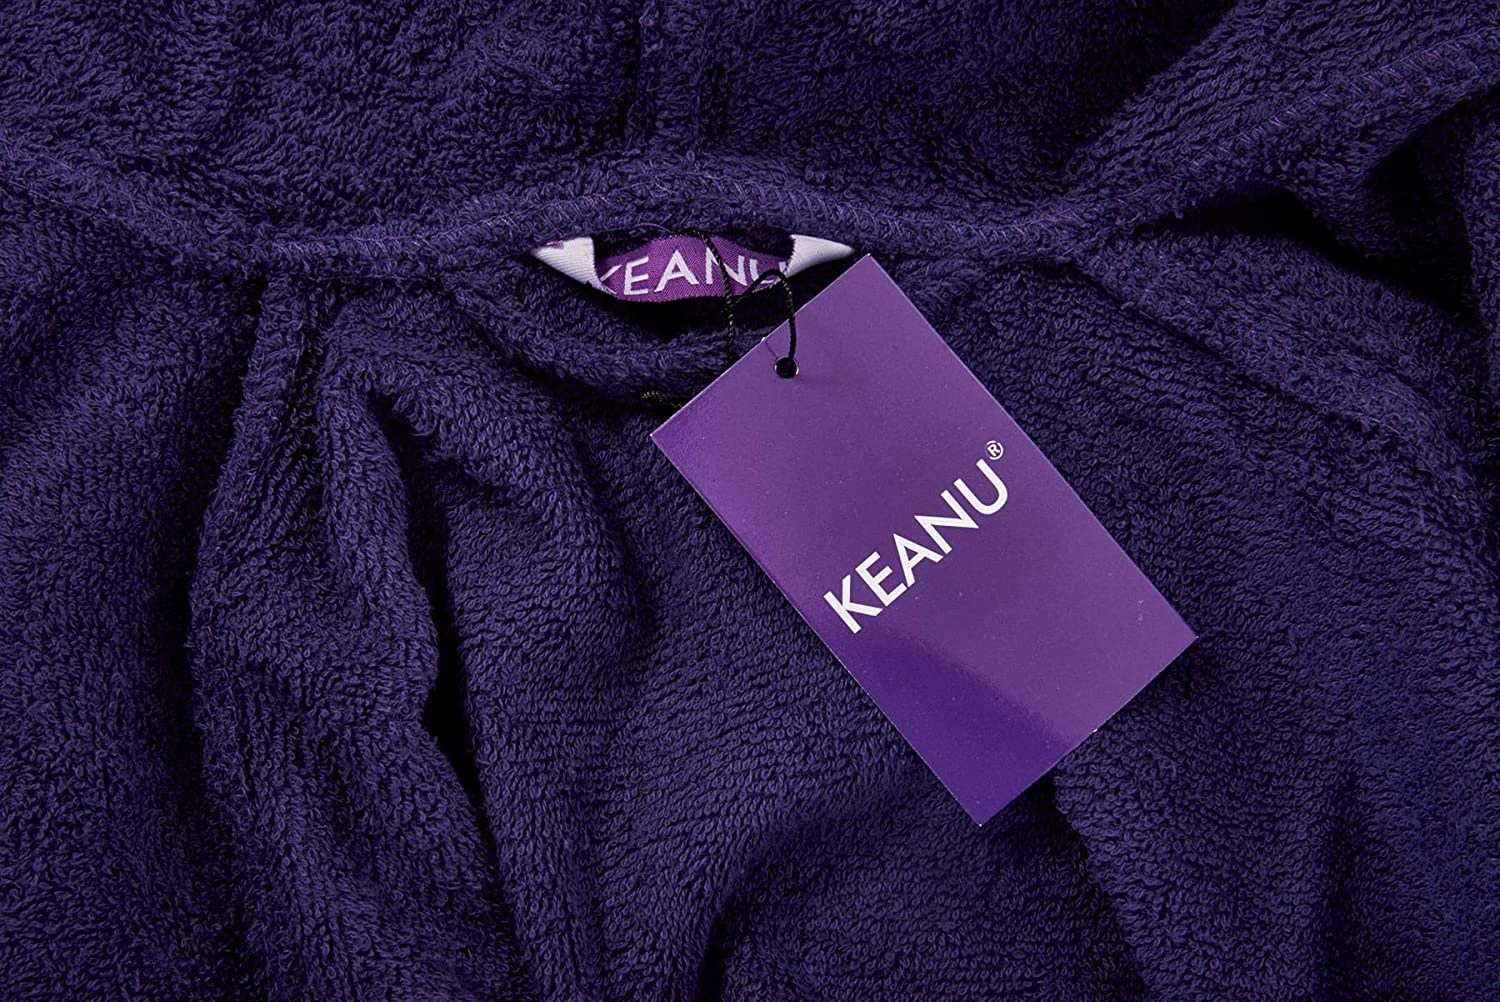 Keanu Ladies 100/% Pure Cotton Terry Towelling Dressing Gown Bathrobe Highly Absorbent Shawl Collar//Hooded Towel Bath Wrap